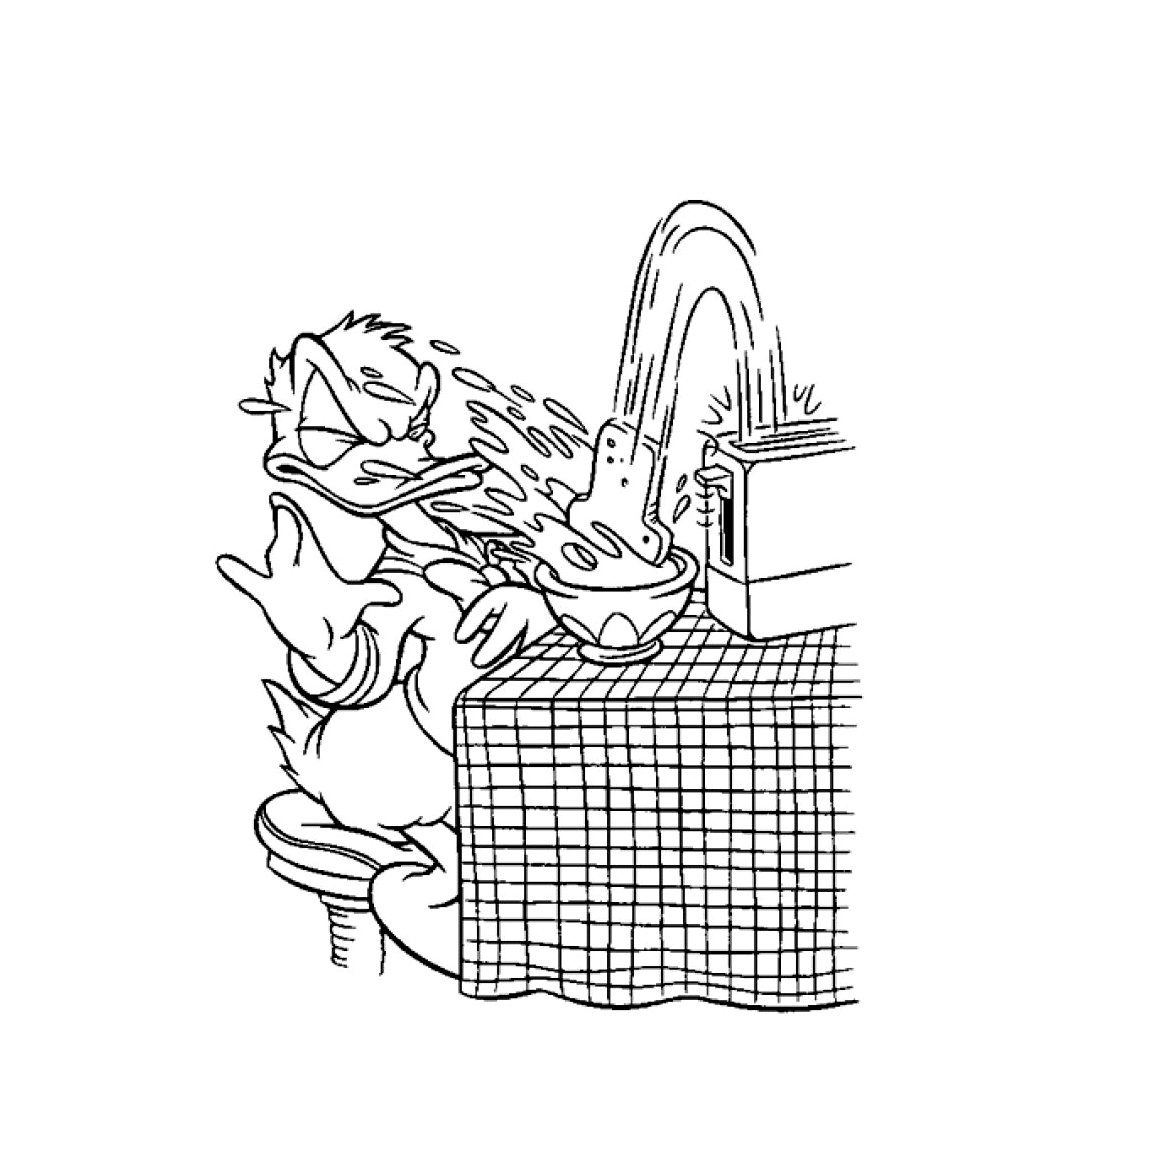 Simple Donald coloring page to download for free